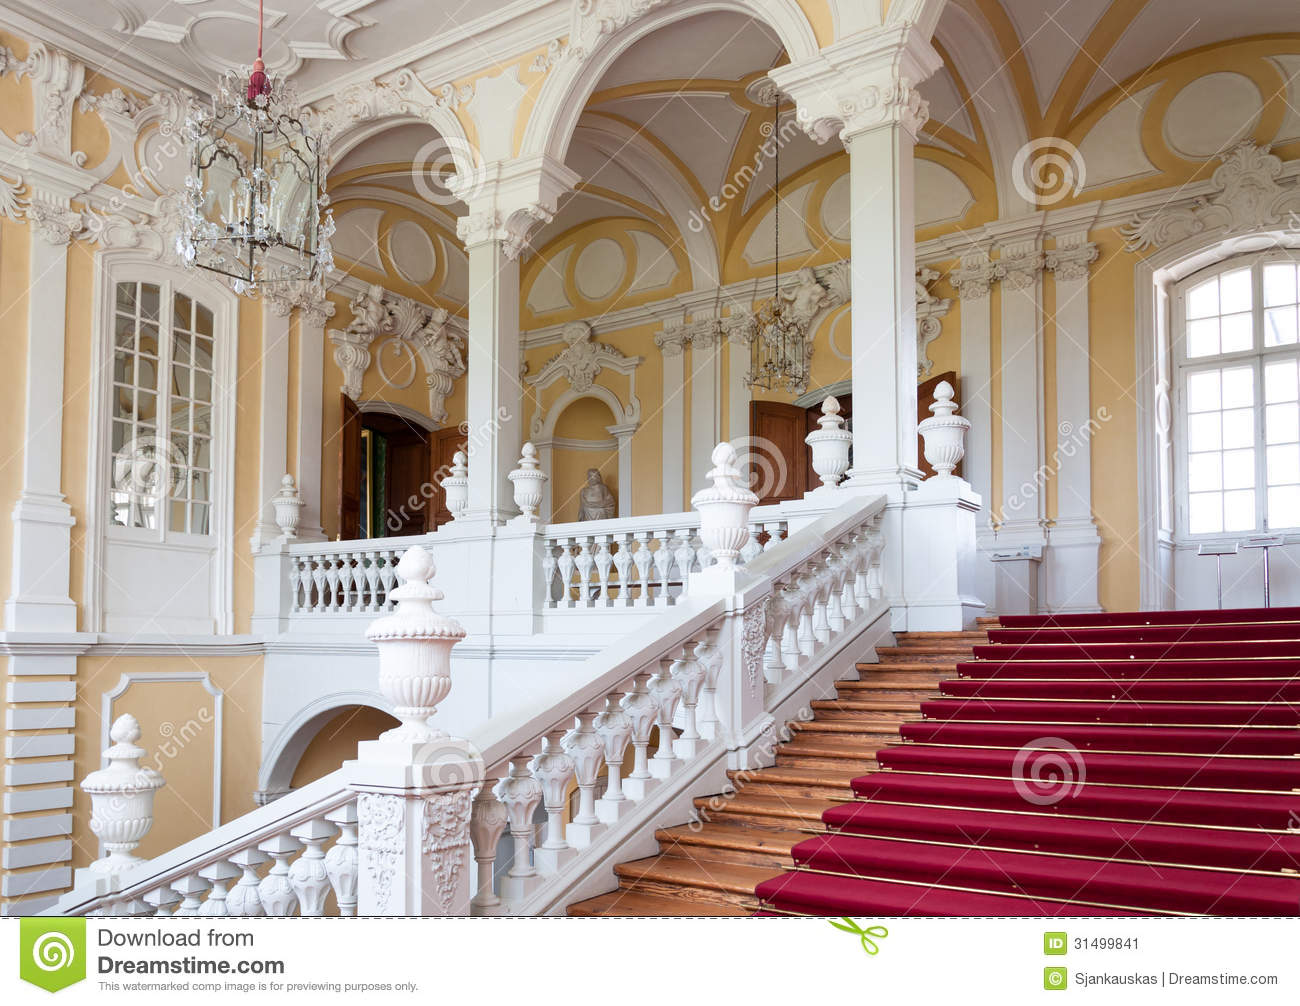 Staircase in palace